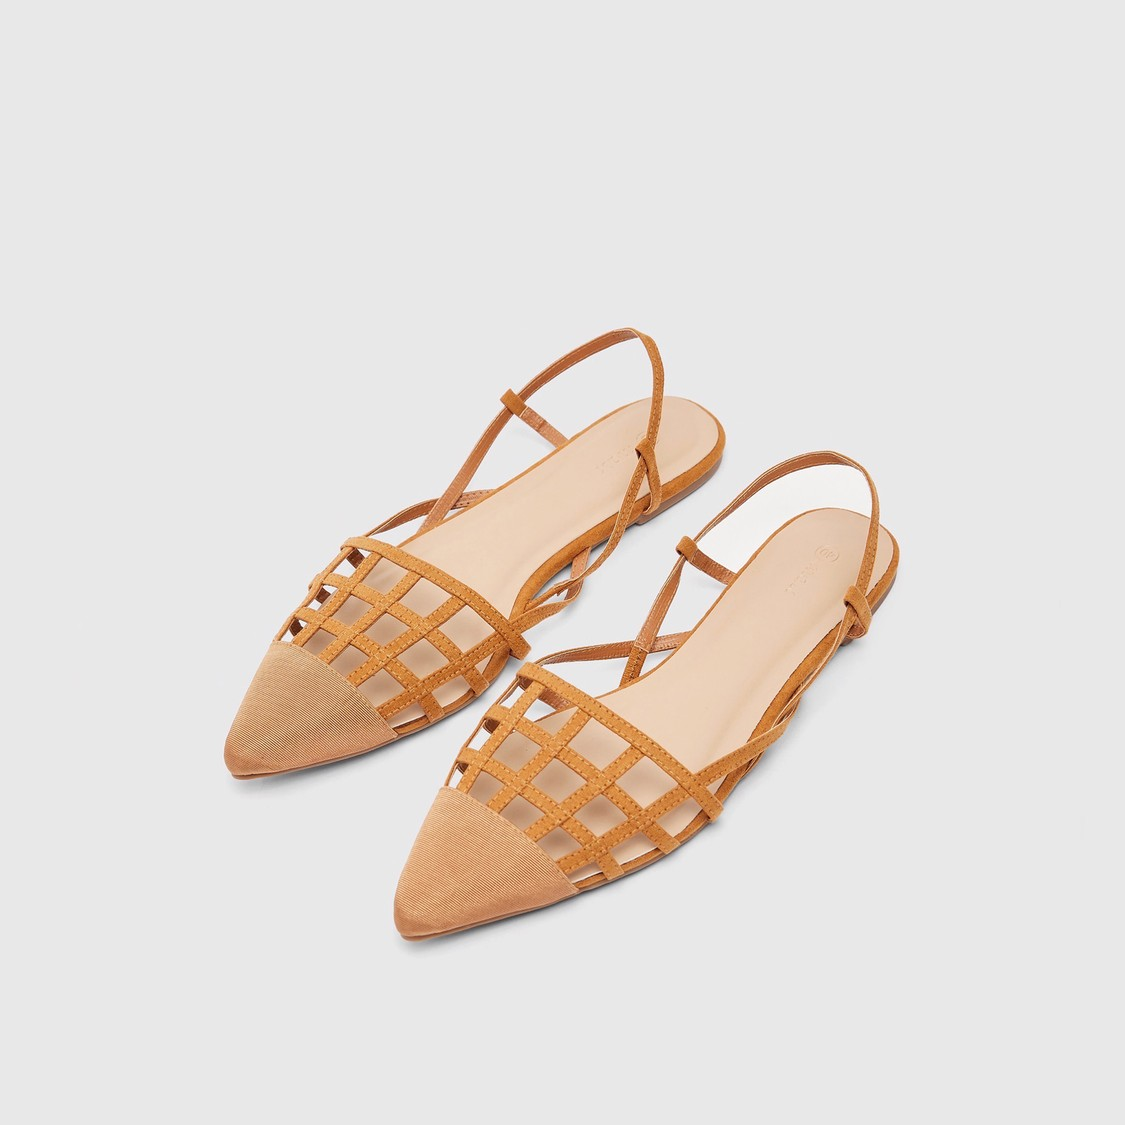 Solid Flat Sandals with Elasticated Ankle Strap